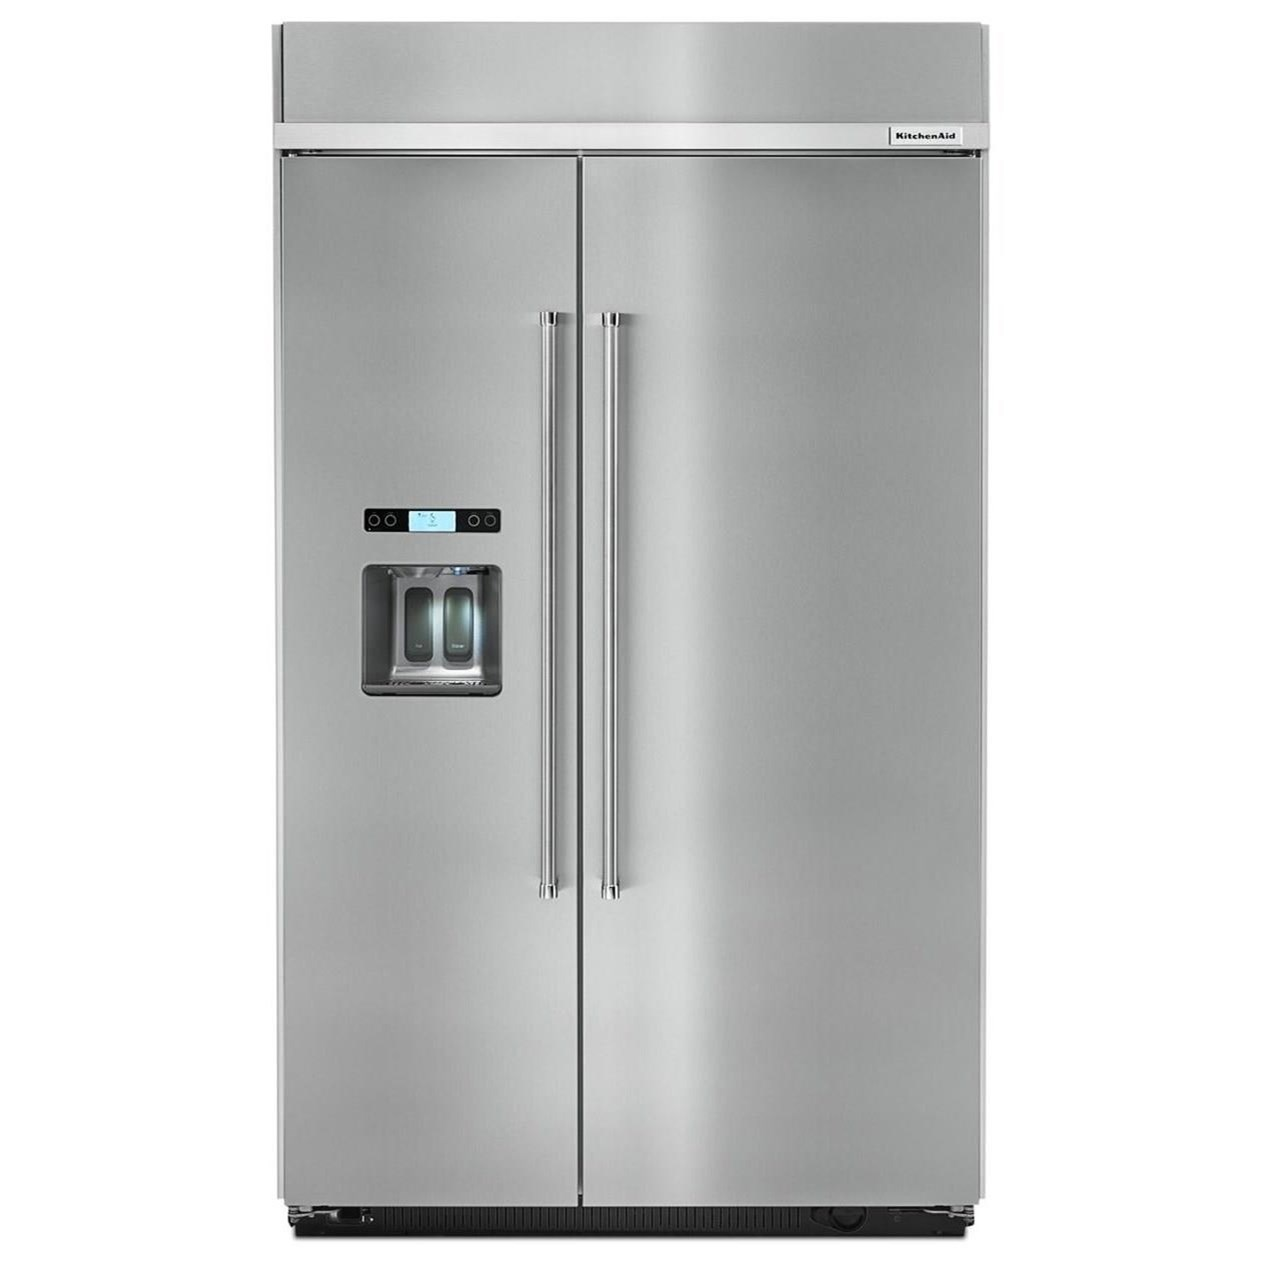 """KitchenAid Side-by-Side Refrigerator 29.5 cu. ft 48"""" Built-In Side by Side Fridge by KitchenAid at Furniture and ApplianceMart"""